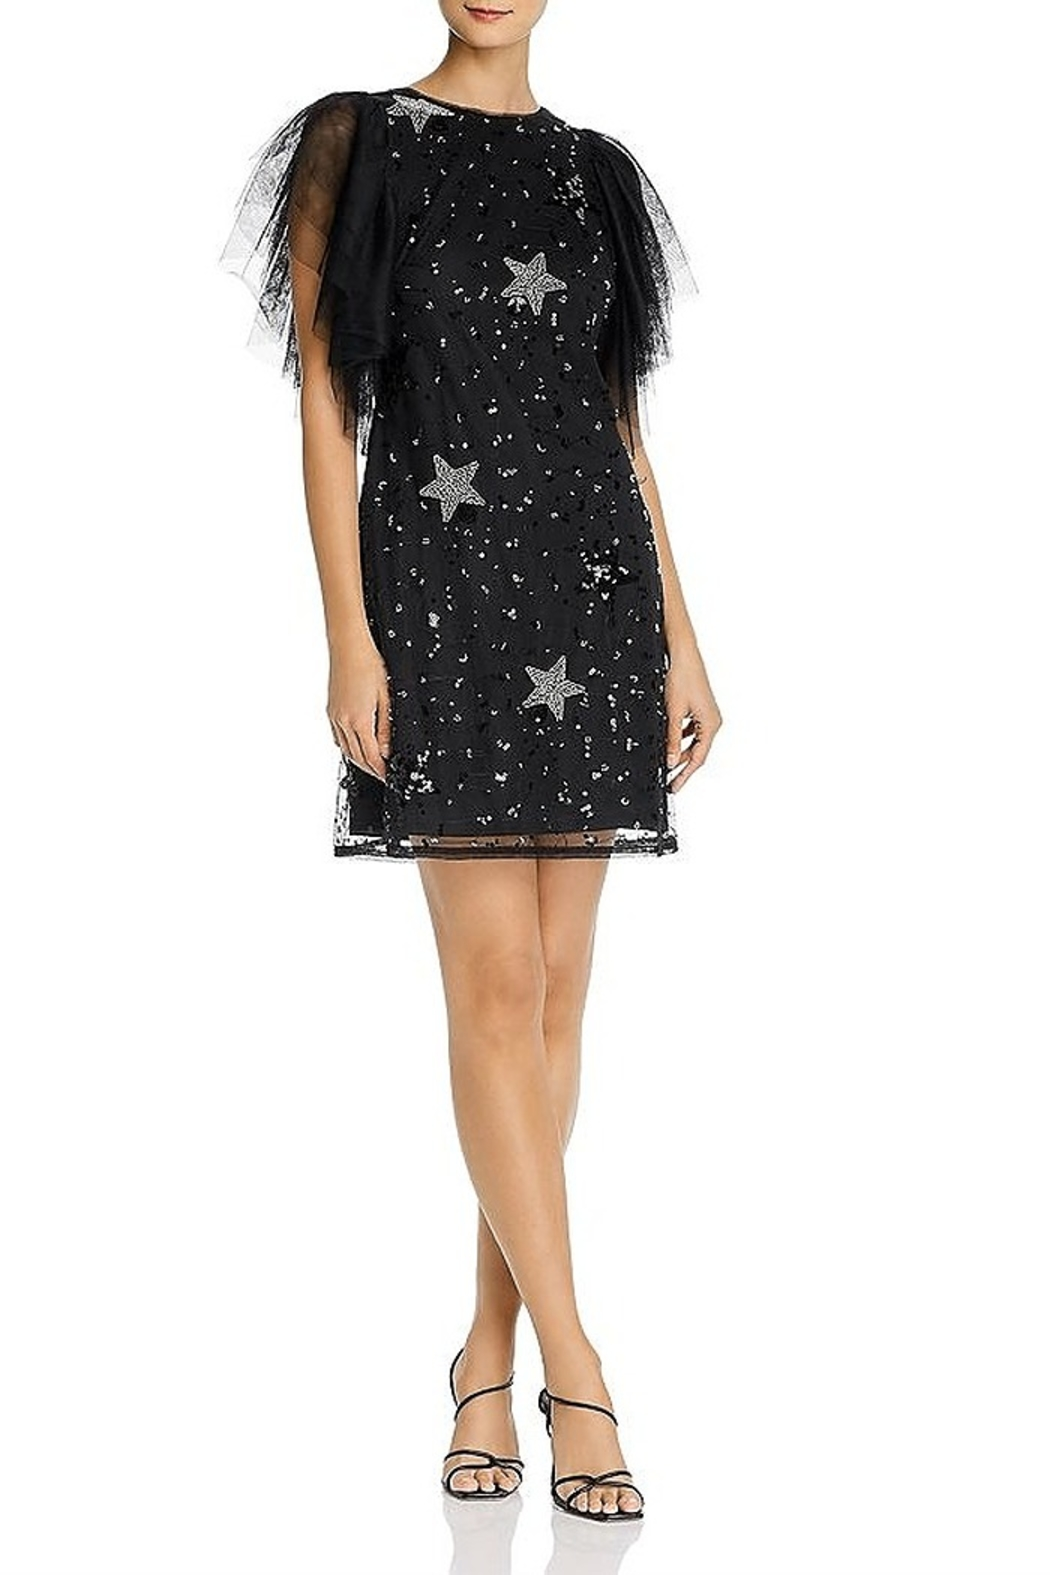 Aidan Mattox Tulle Flutter Sleeve Star Dress - Front Cropped Image